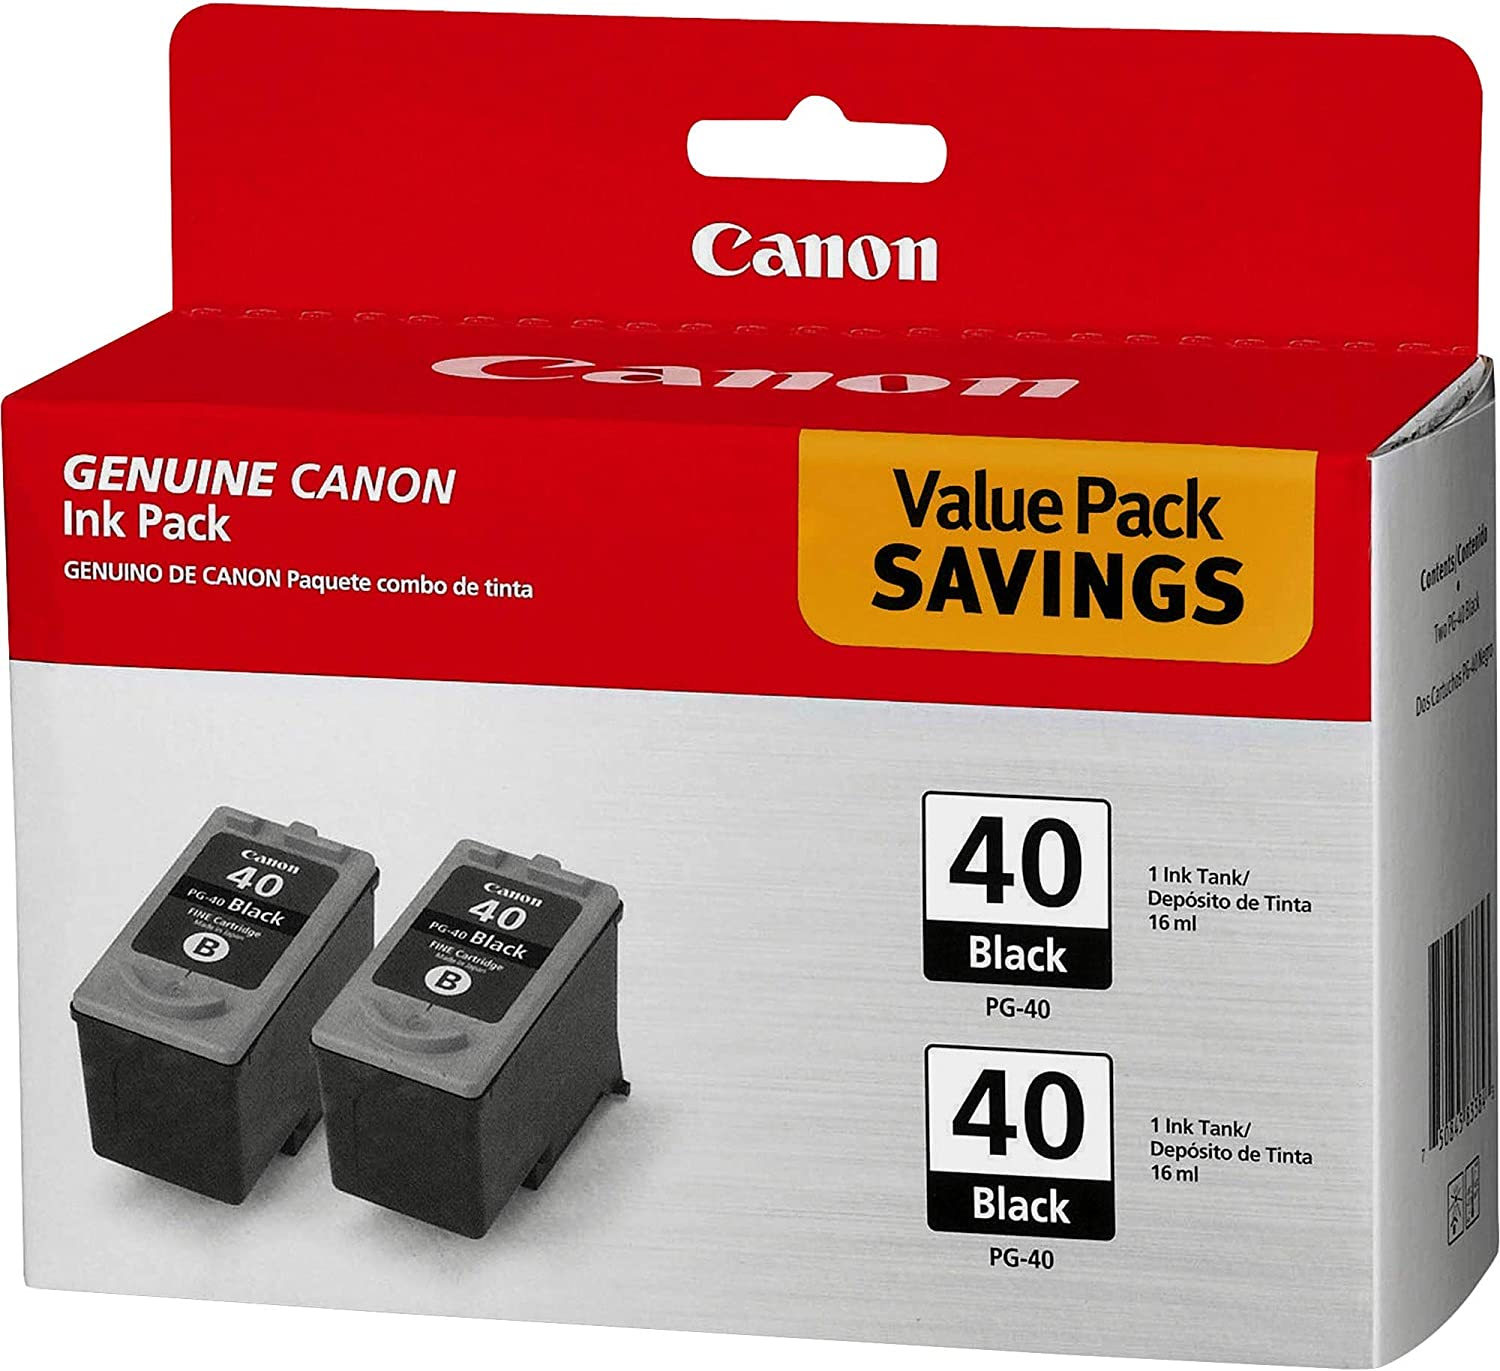 Canon PG-40 Black Twin Pack Compatible to iP2600, iP1800, iP1700, iP1600, MX310, and MX300